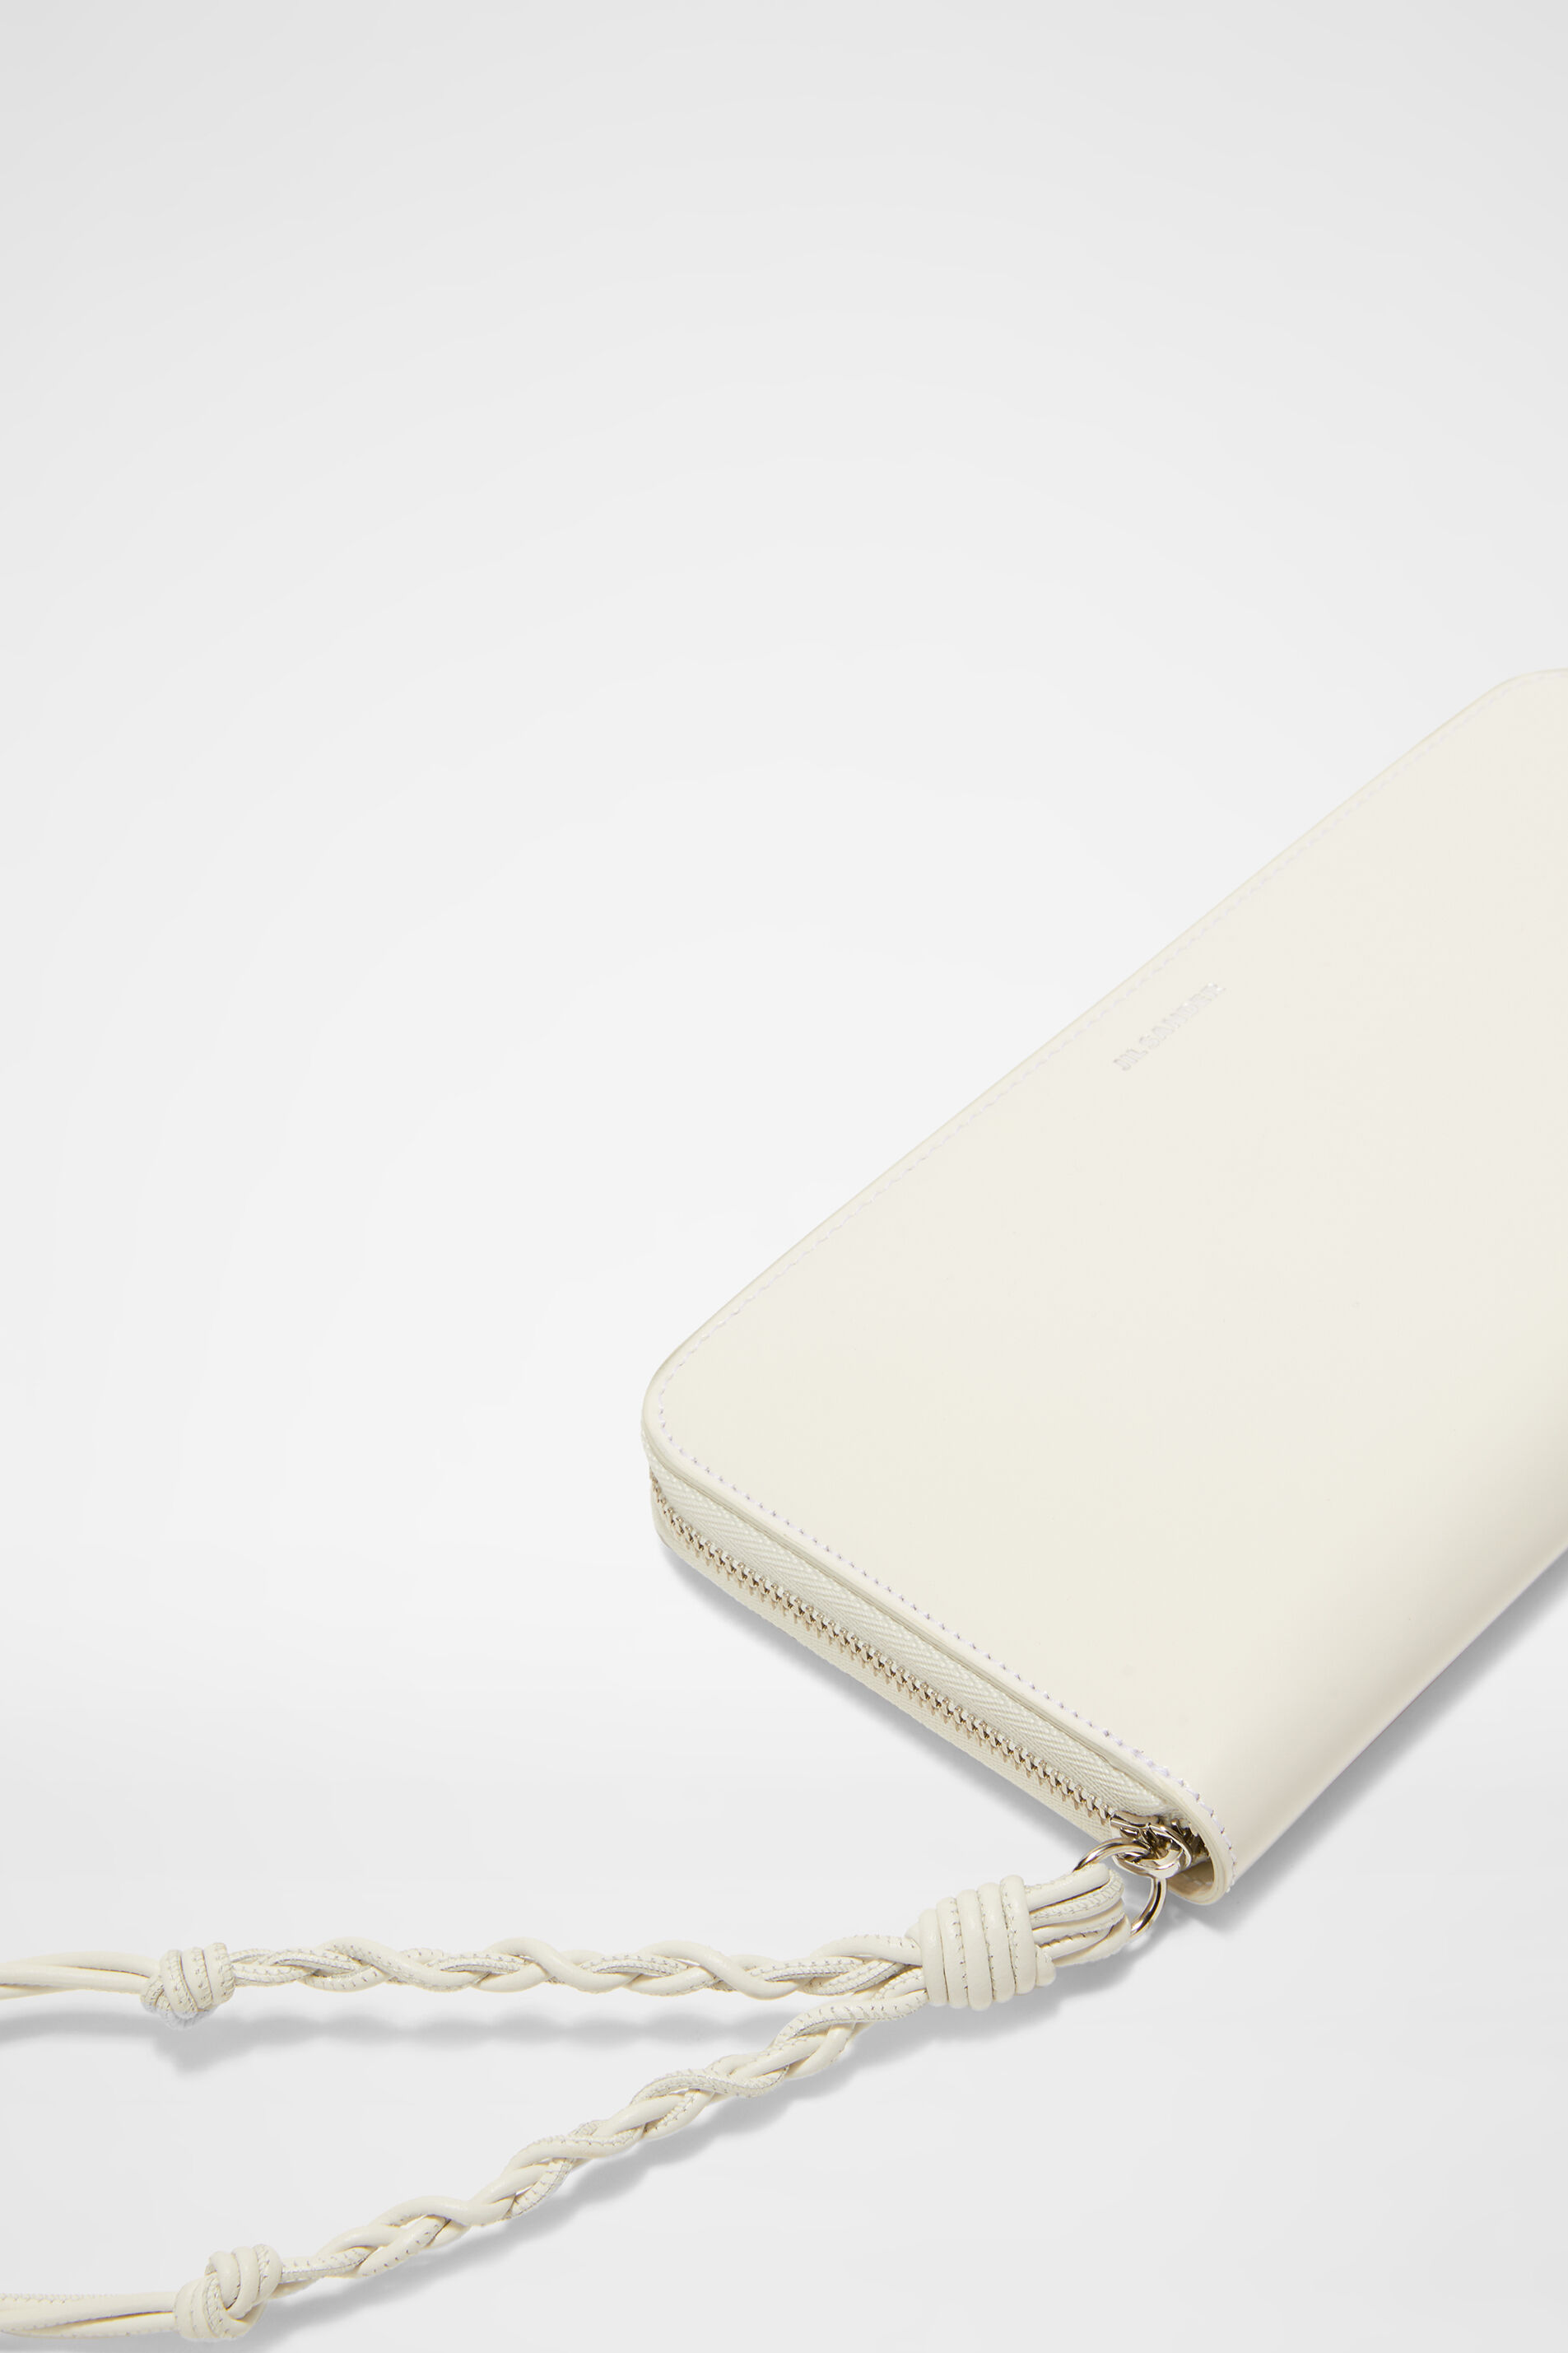 Zip Around Wallet, natural, large